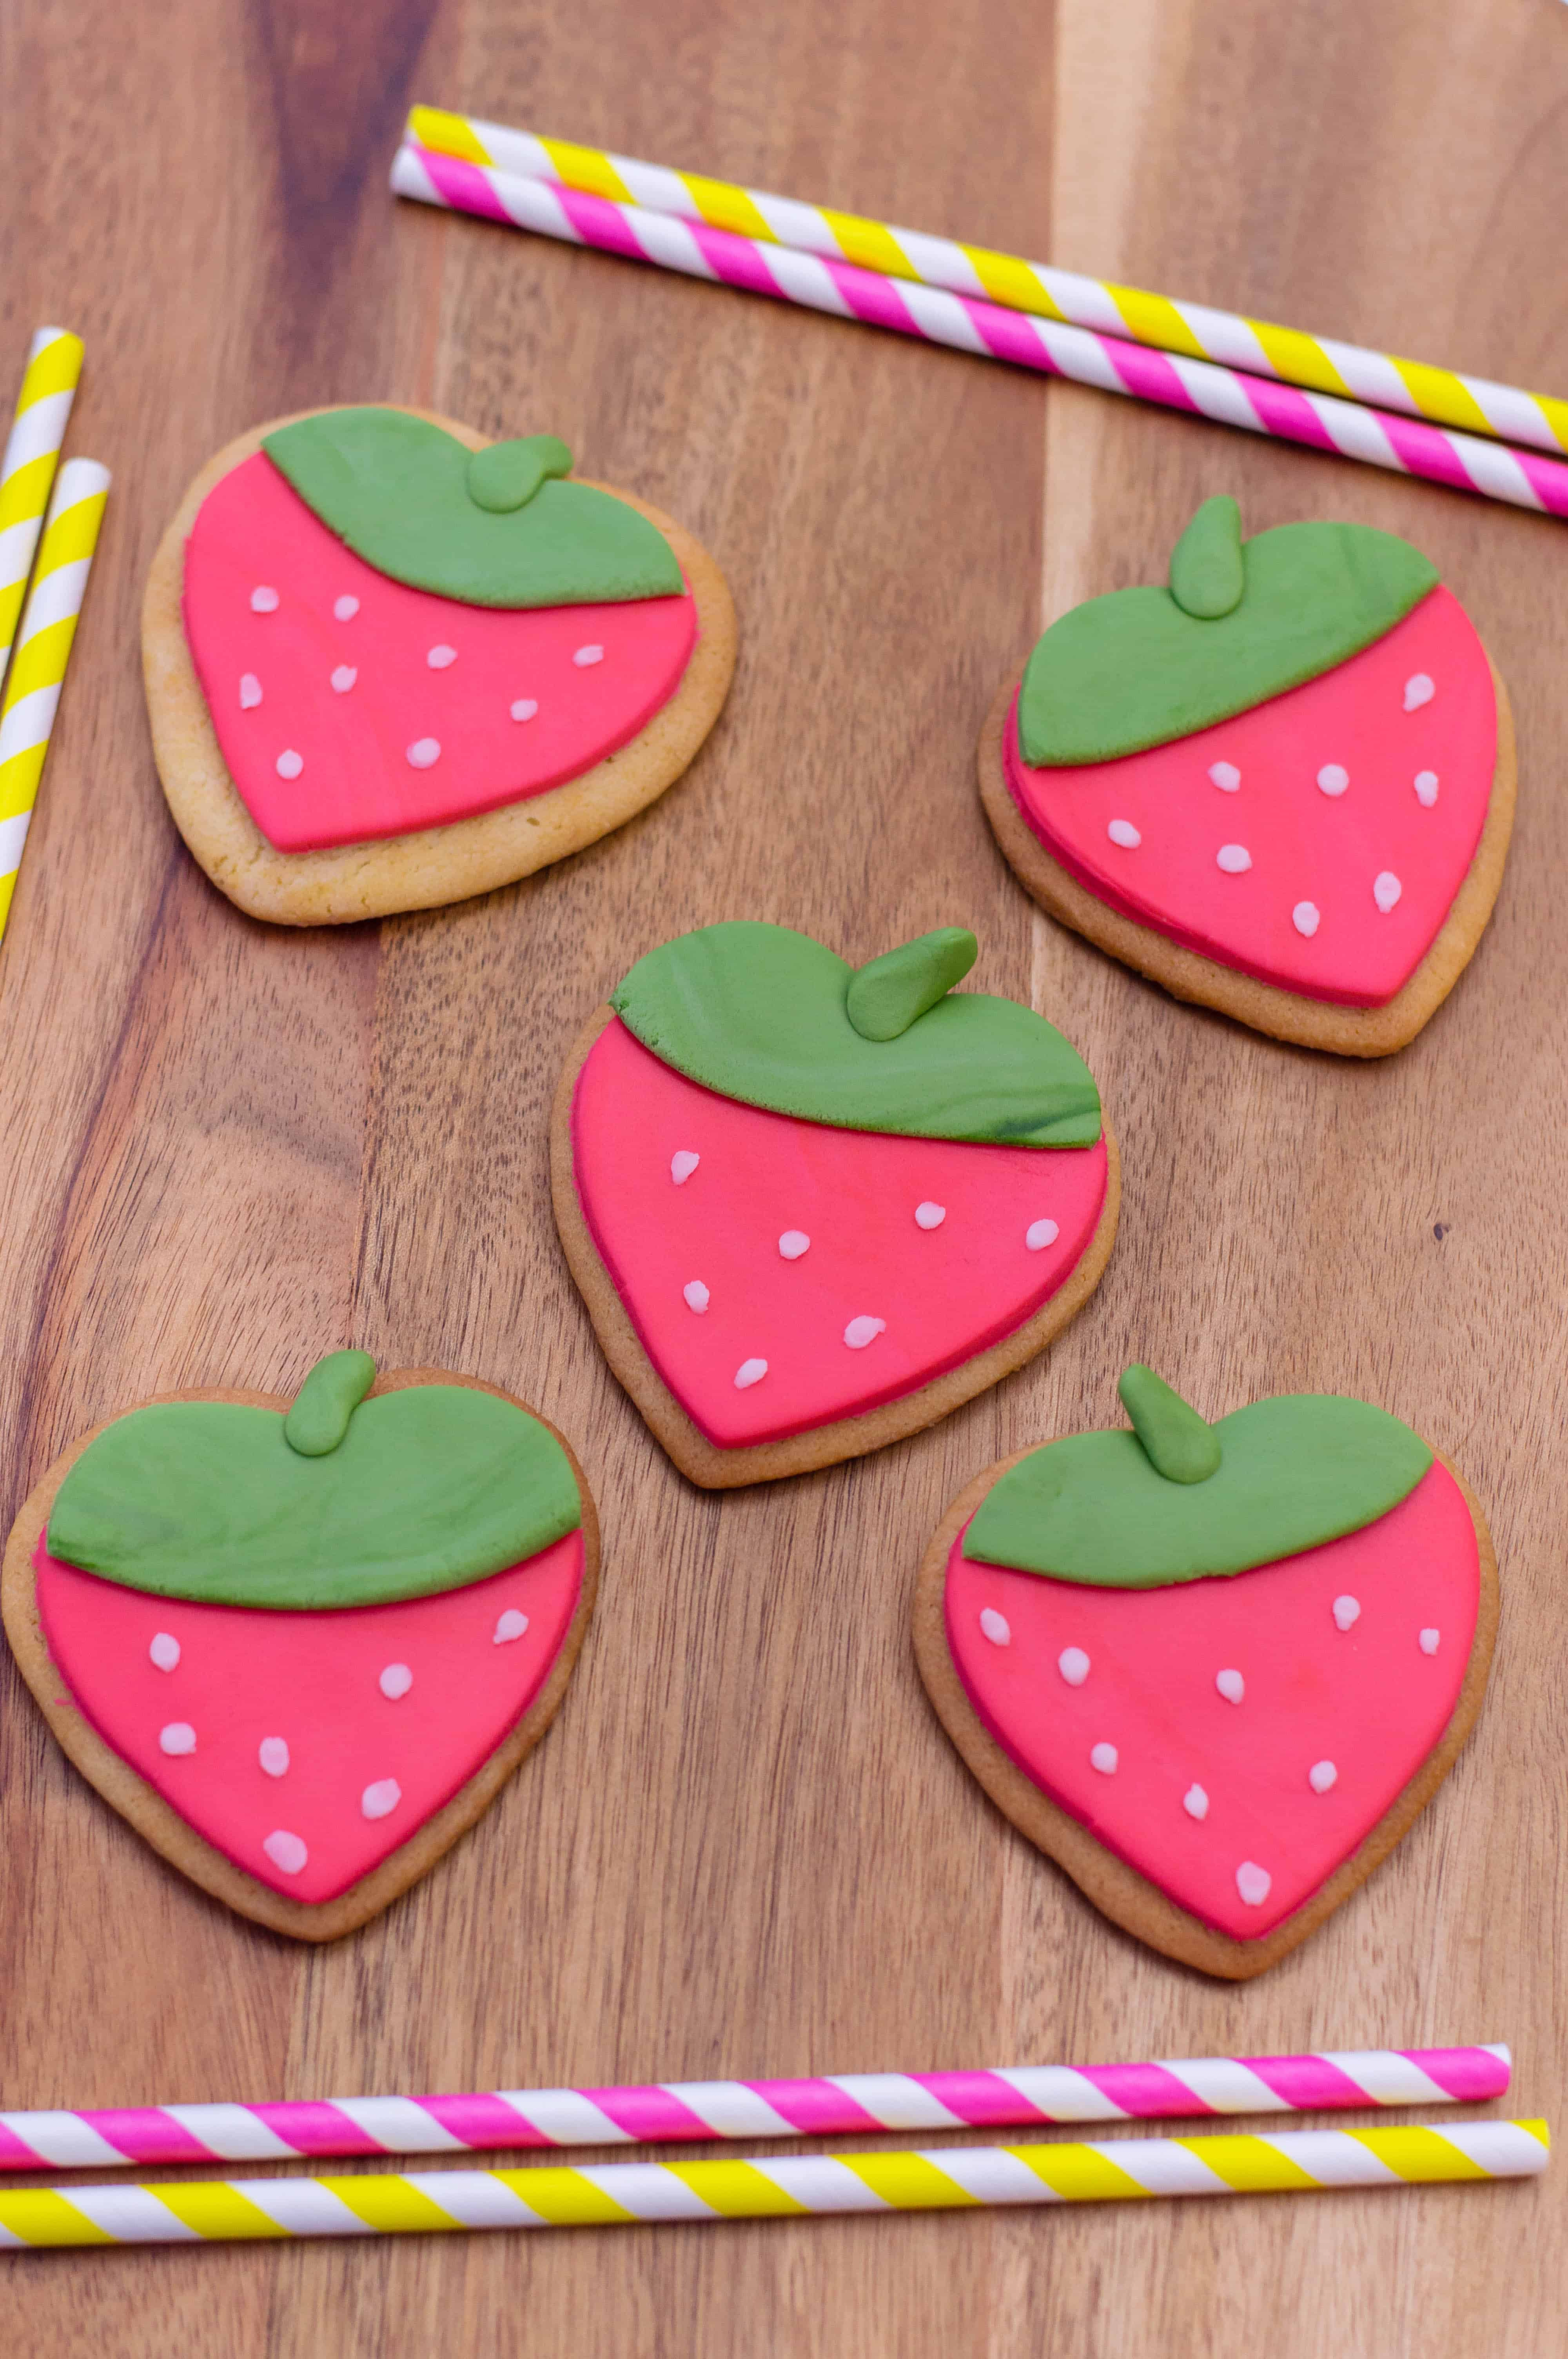 strawberry shaped cookies